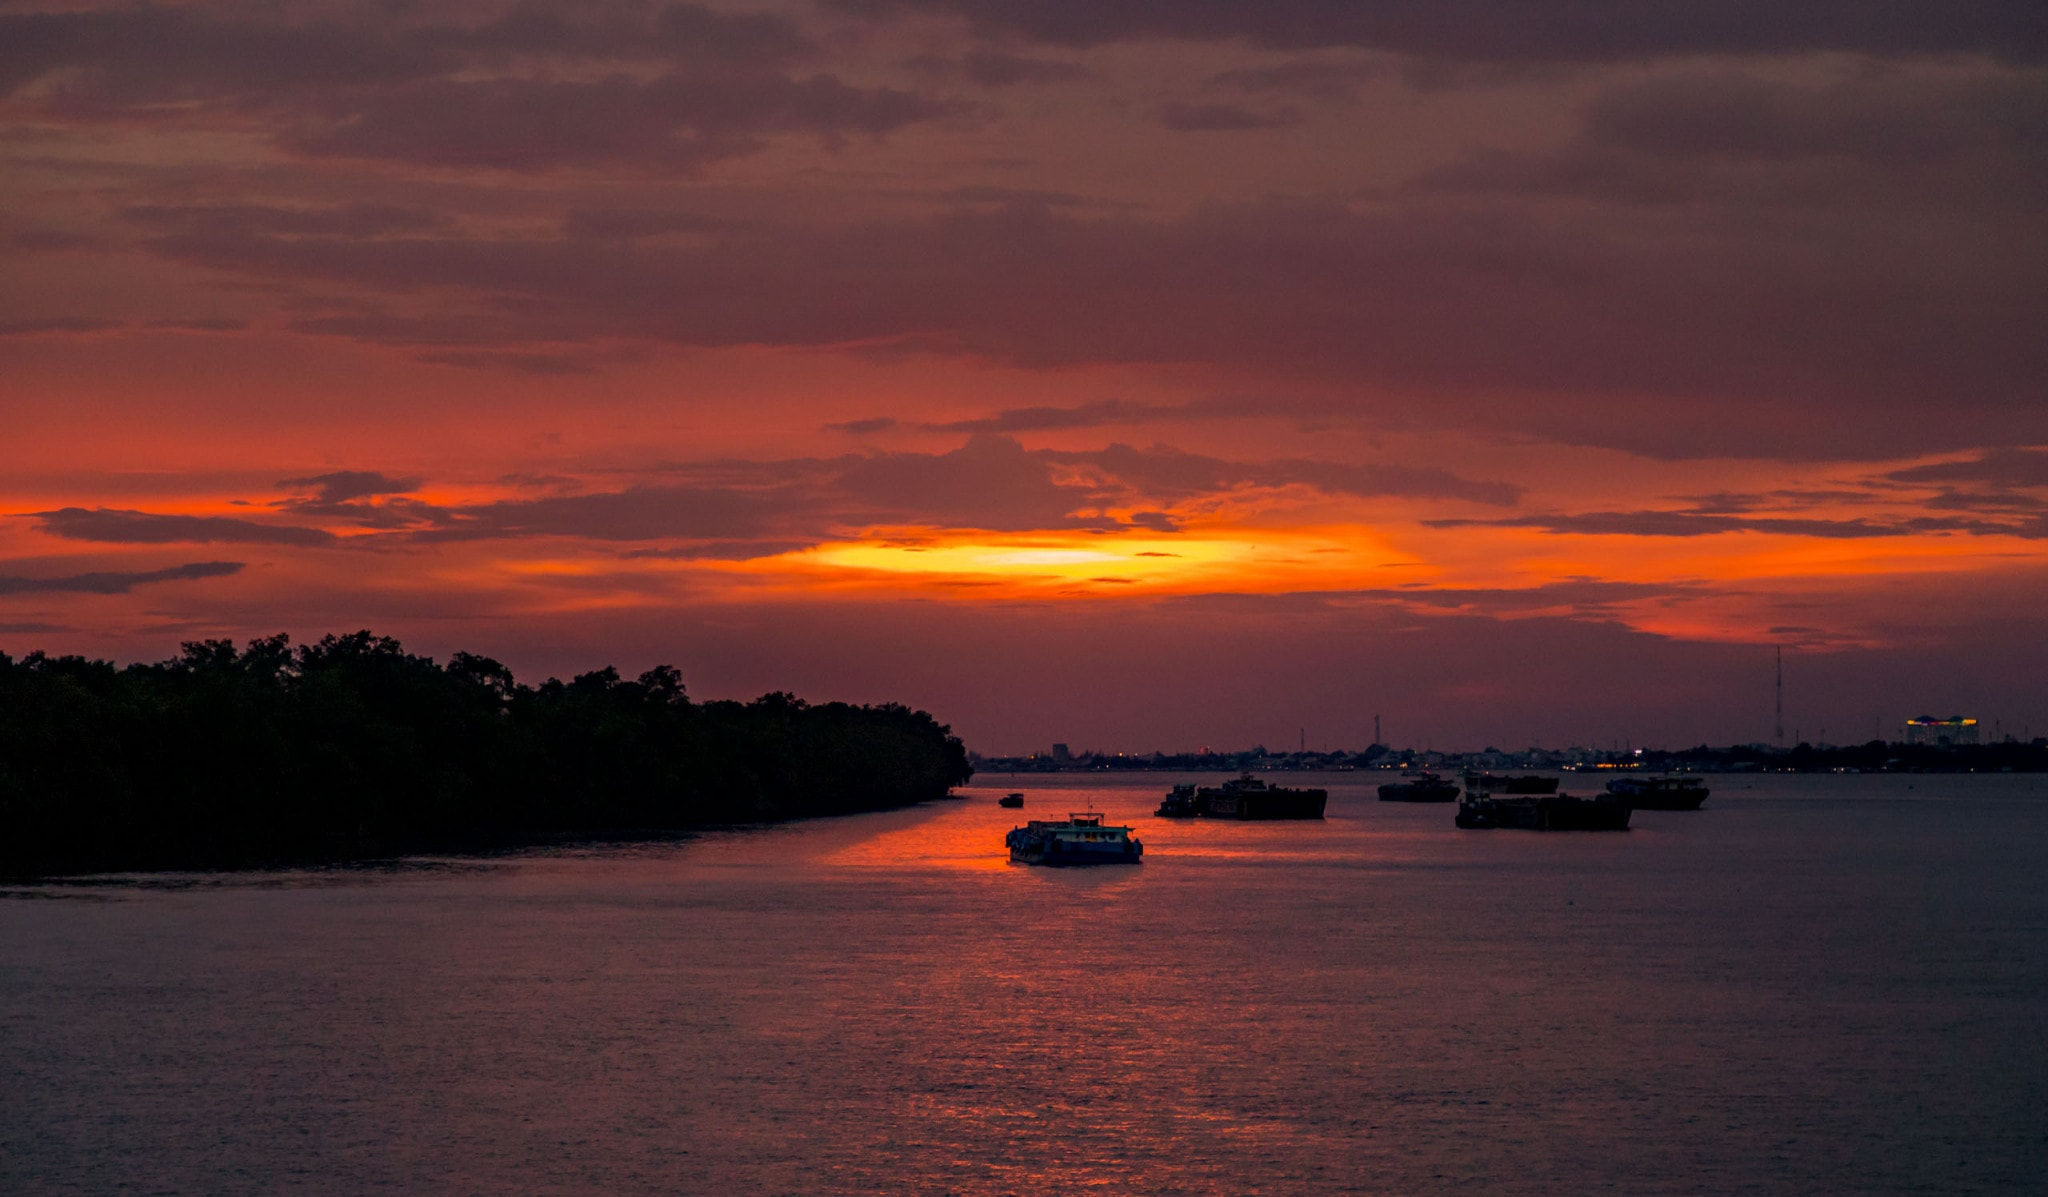 Mekong Delta Sunset - VIETNAM & CAMBODIA - Ho Chi Minh City to Siem Reap itinerary with Mekong Cruise